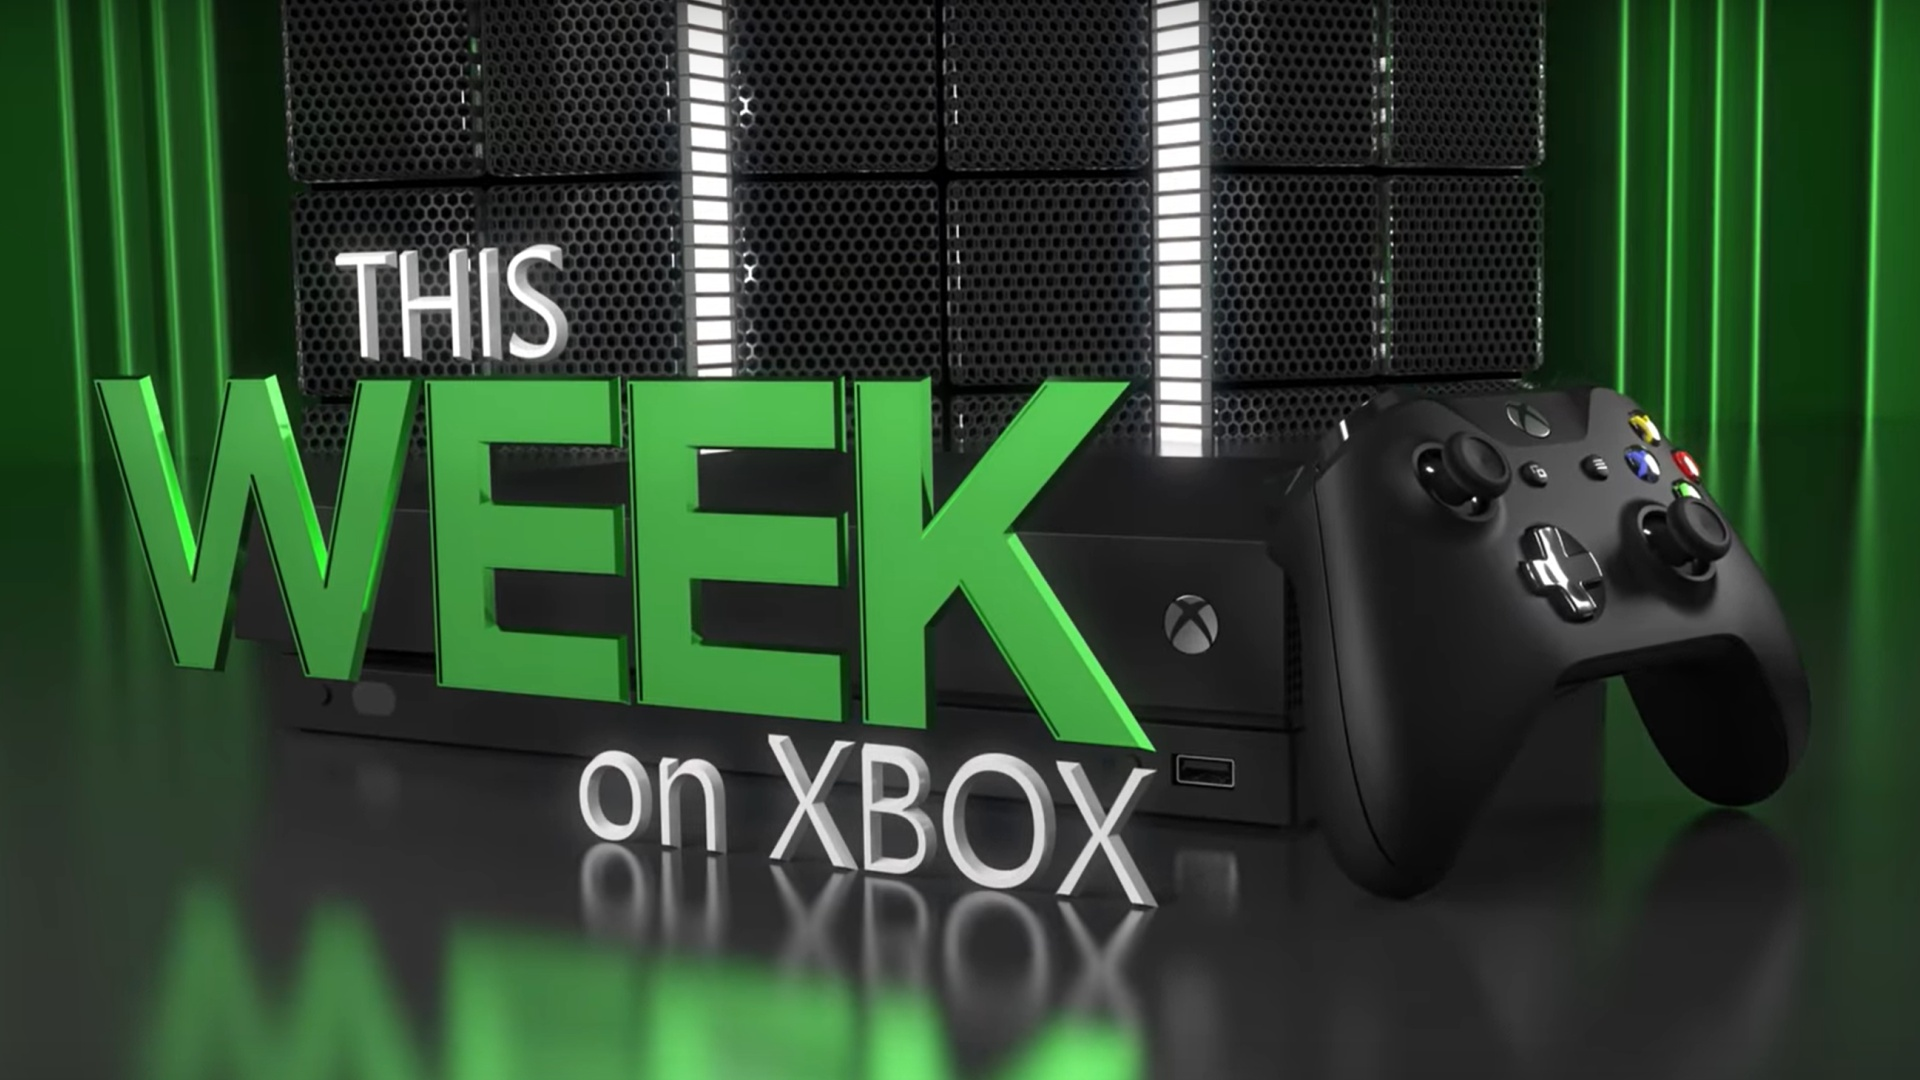 This Week on Xbox: May 29, 2020